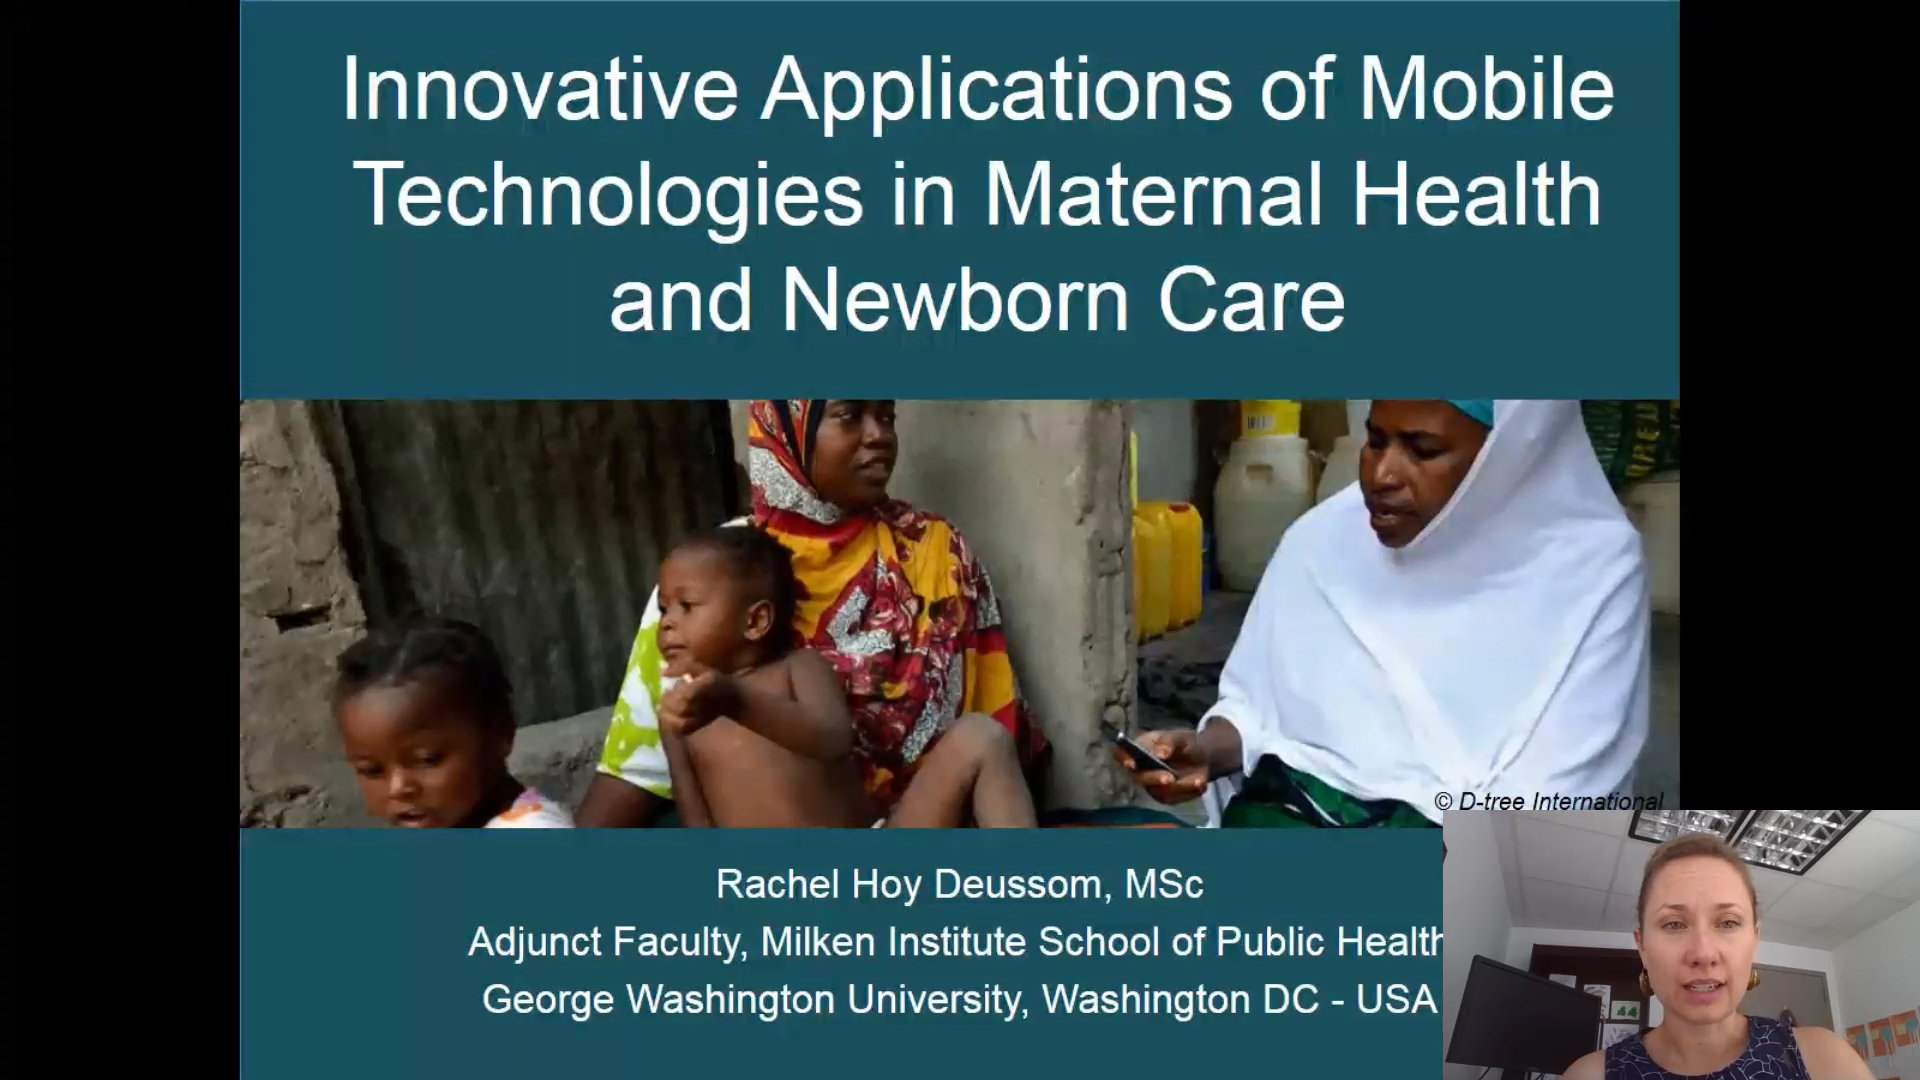 Innovative Applications of Mobile Technologies in Maternal Health and Newborn Care